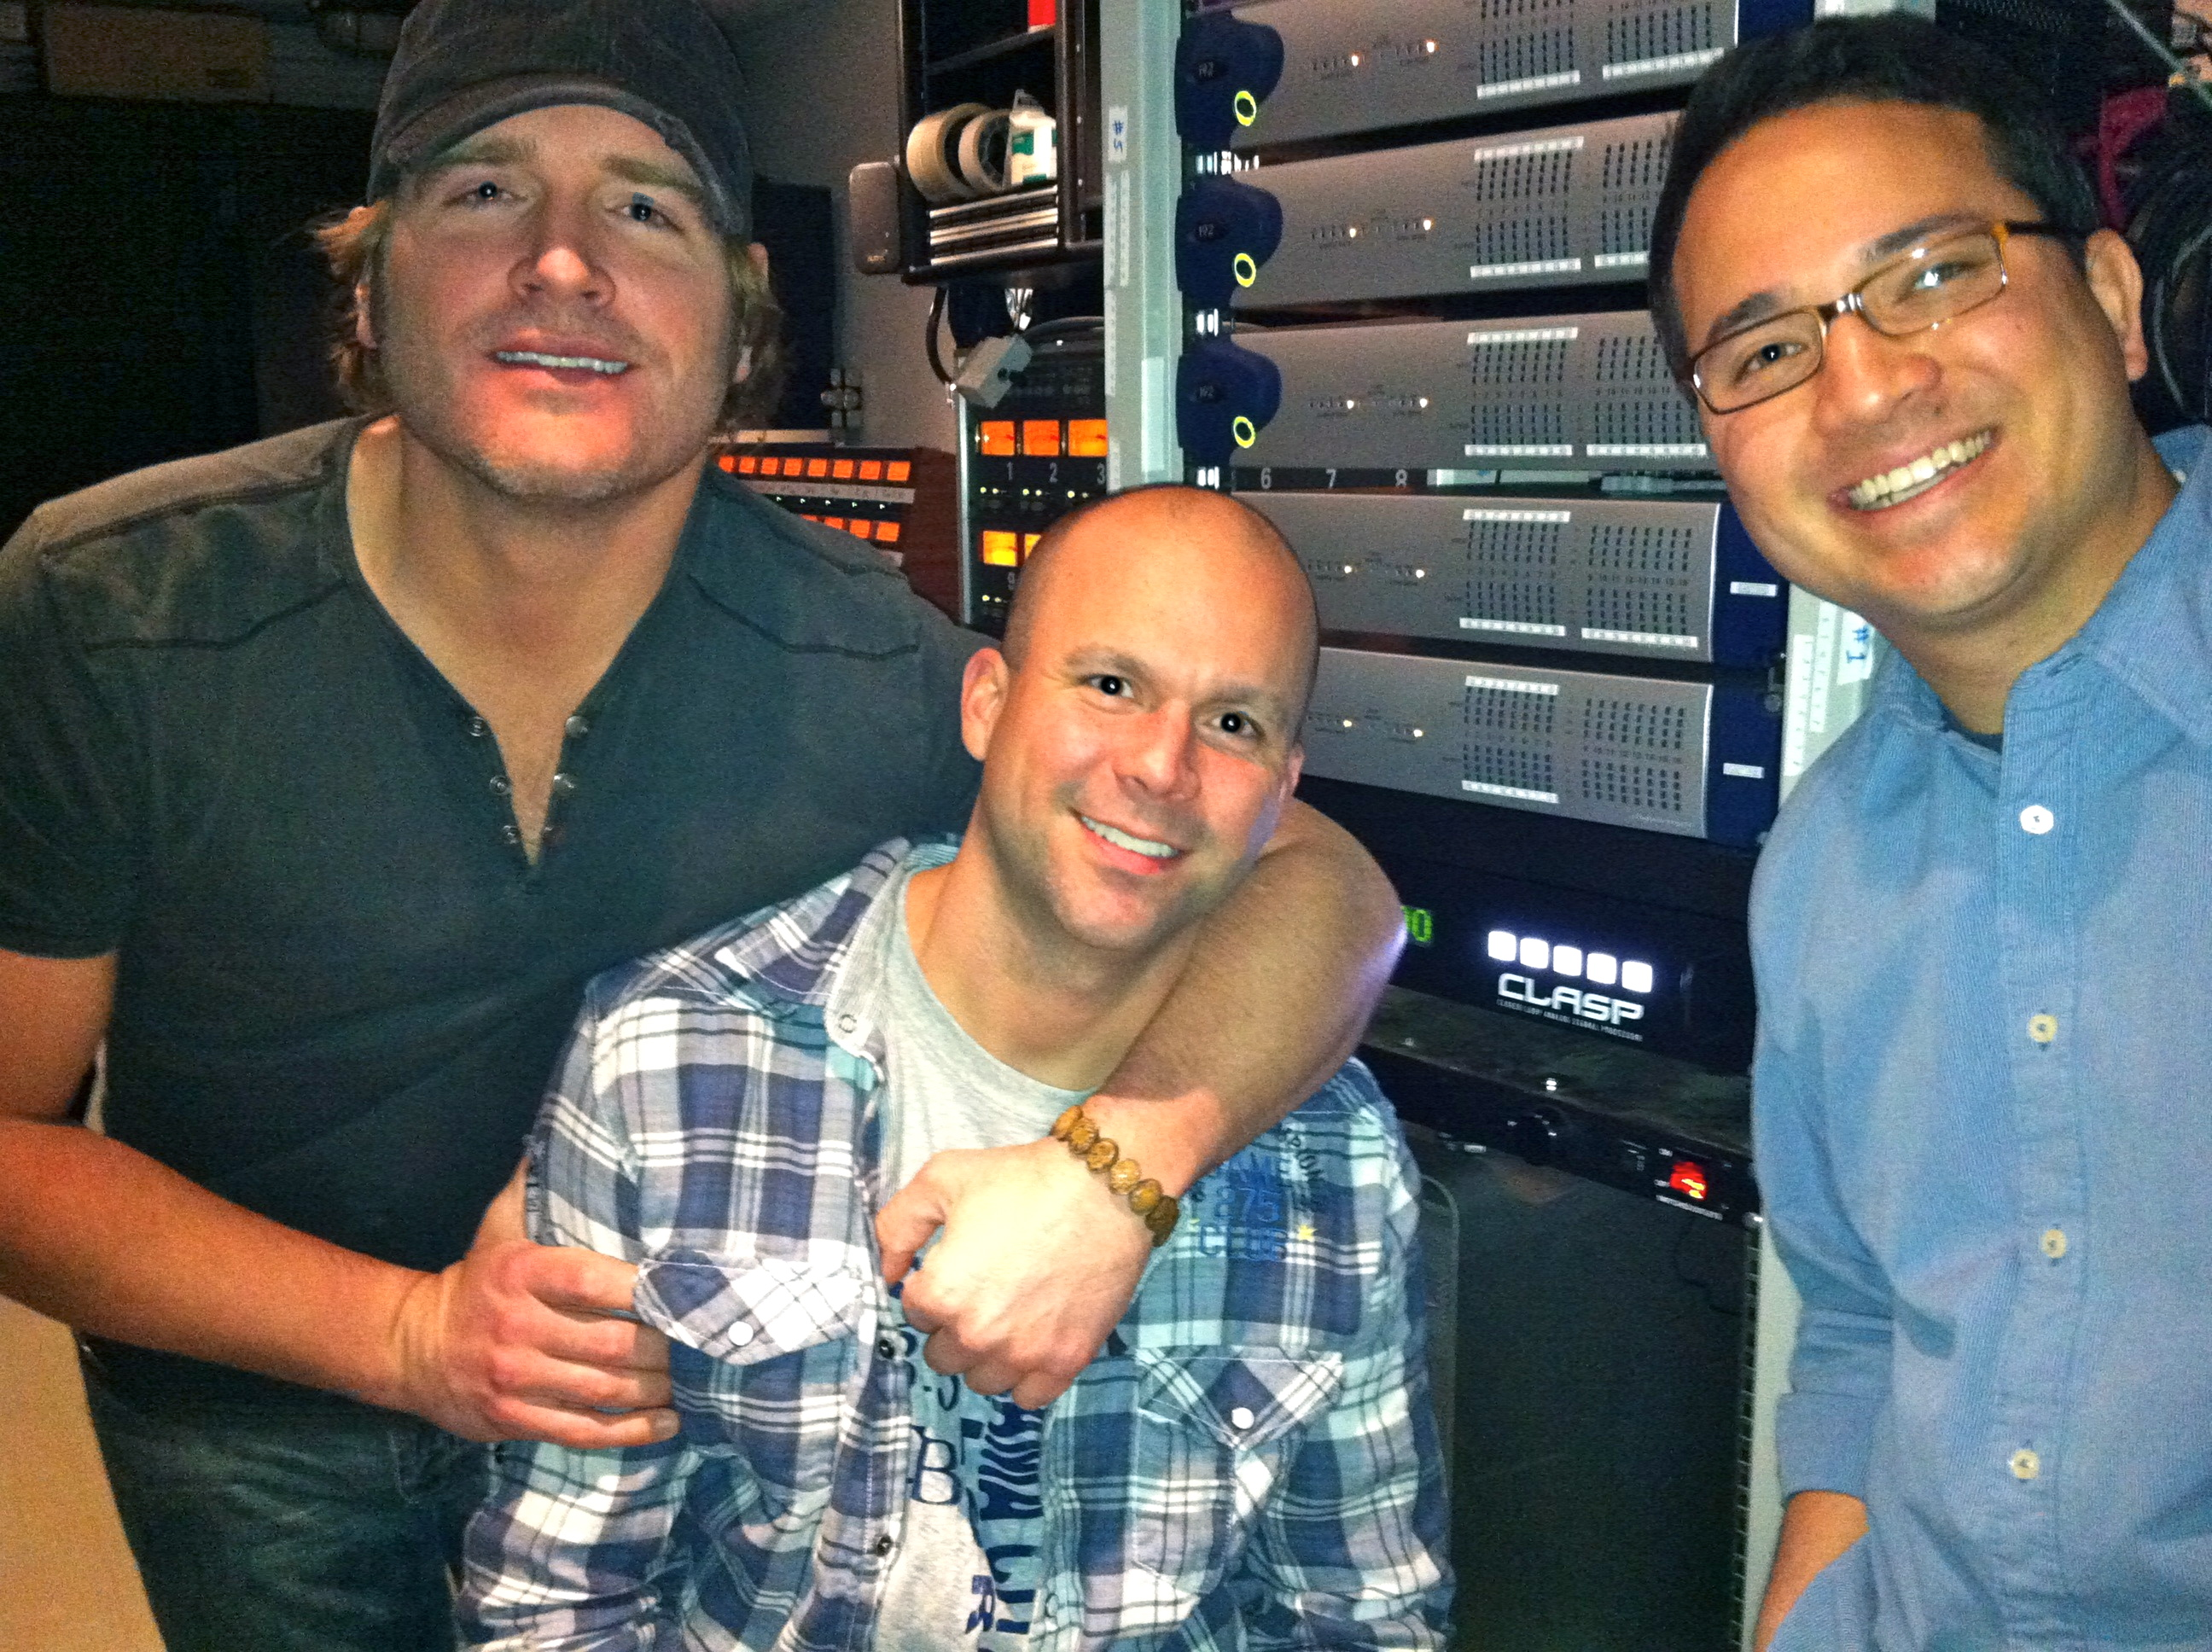 SONY / ARISTA Records Country Music Artist Jarrod Neimann with Engineer Brian Kolb and Producer Dave Brainard